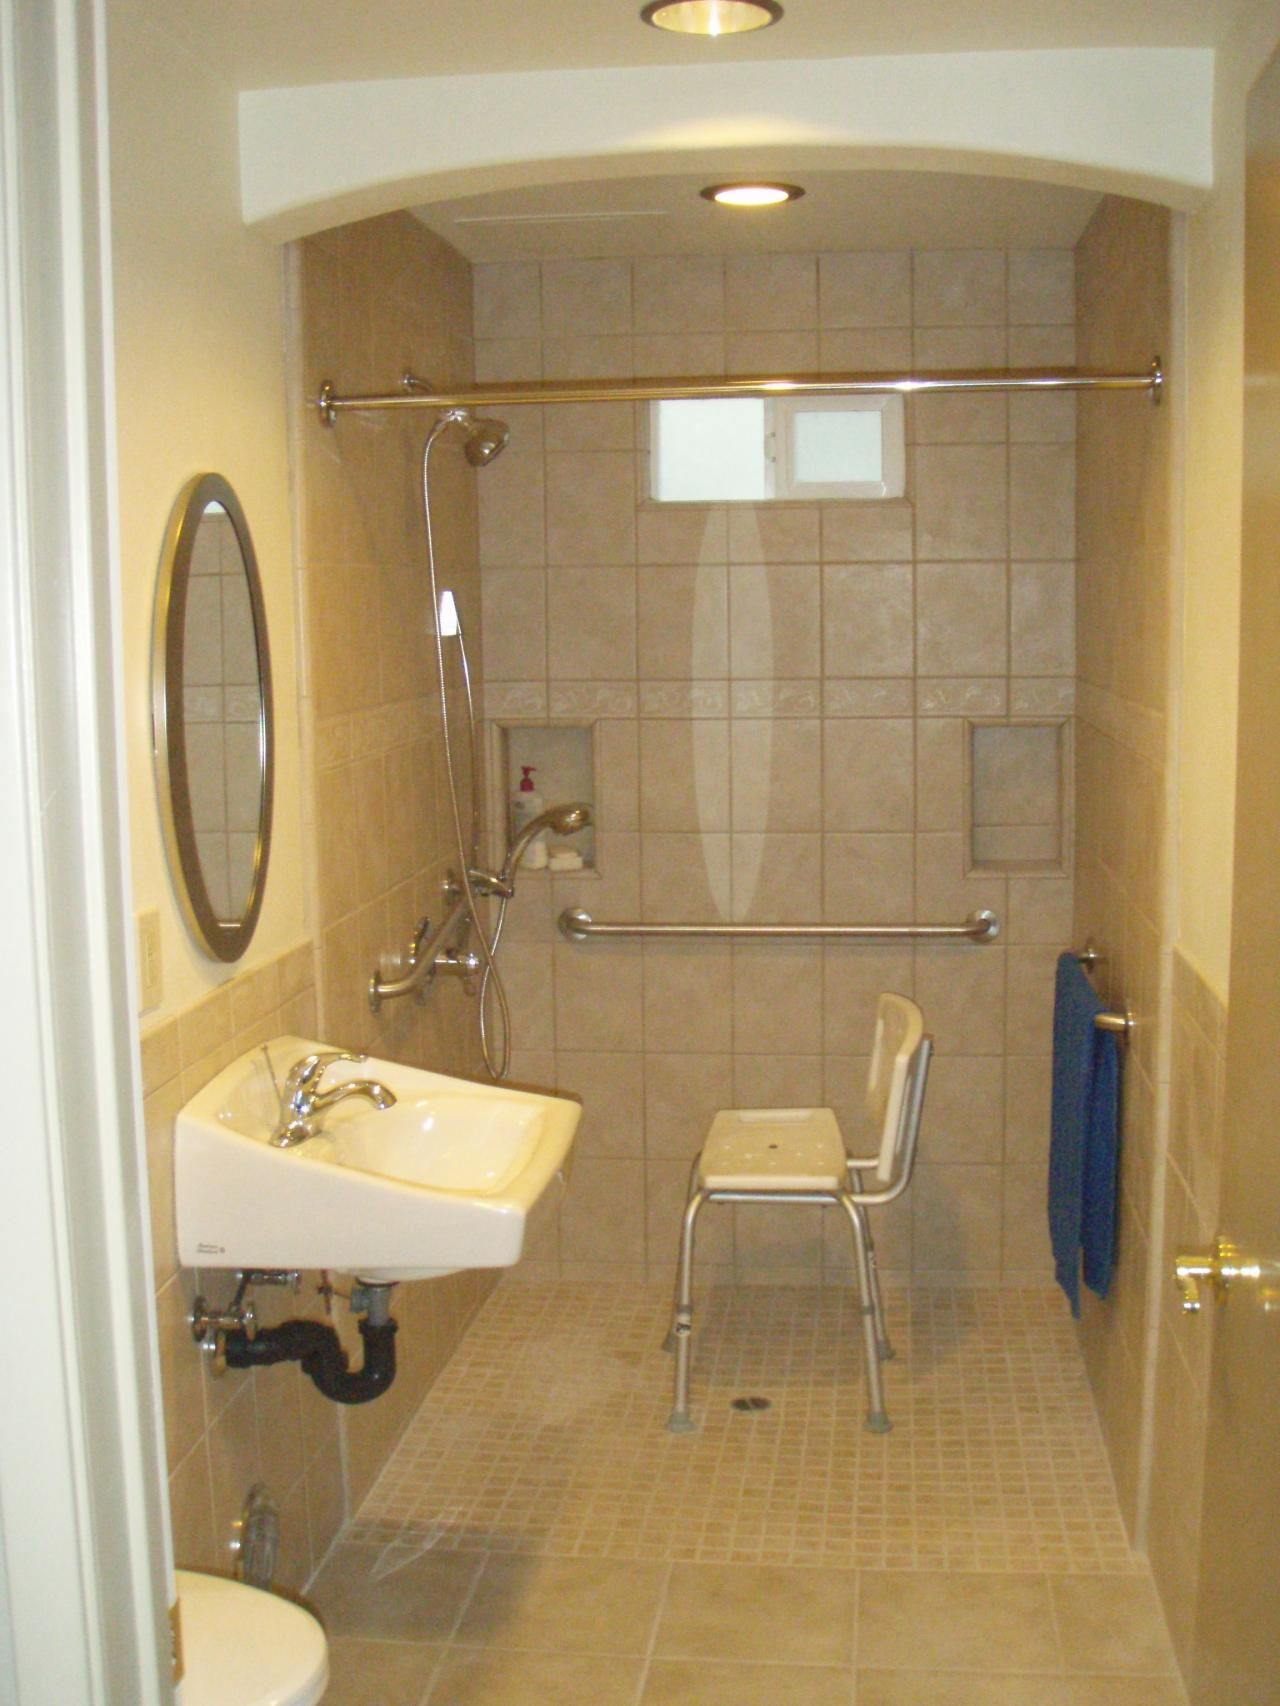 Handicapped Accessible Bathroom Plans Of Bathroom Remodels For Handicapped Handicapped Bathroom